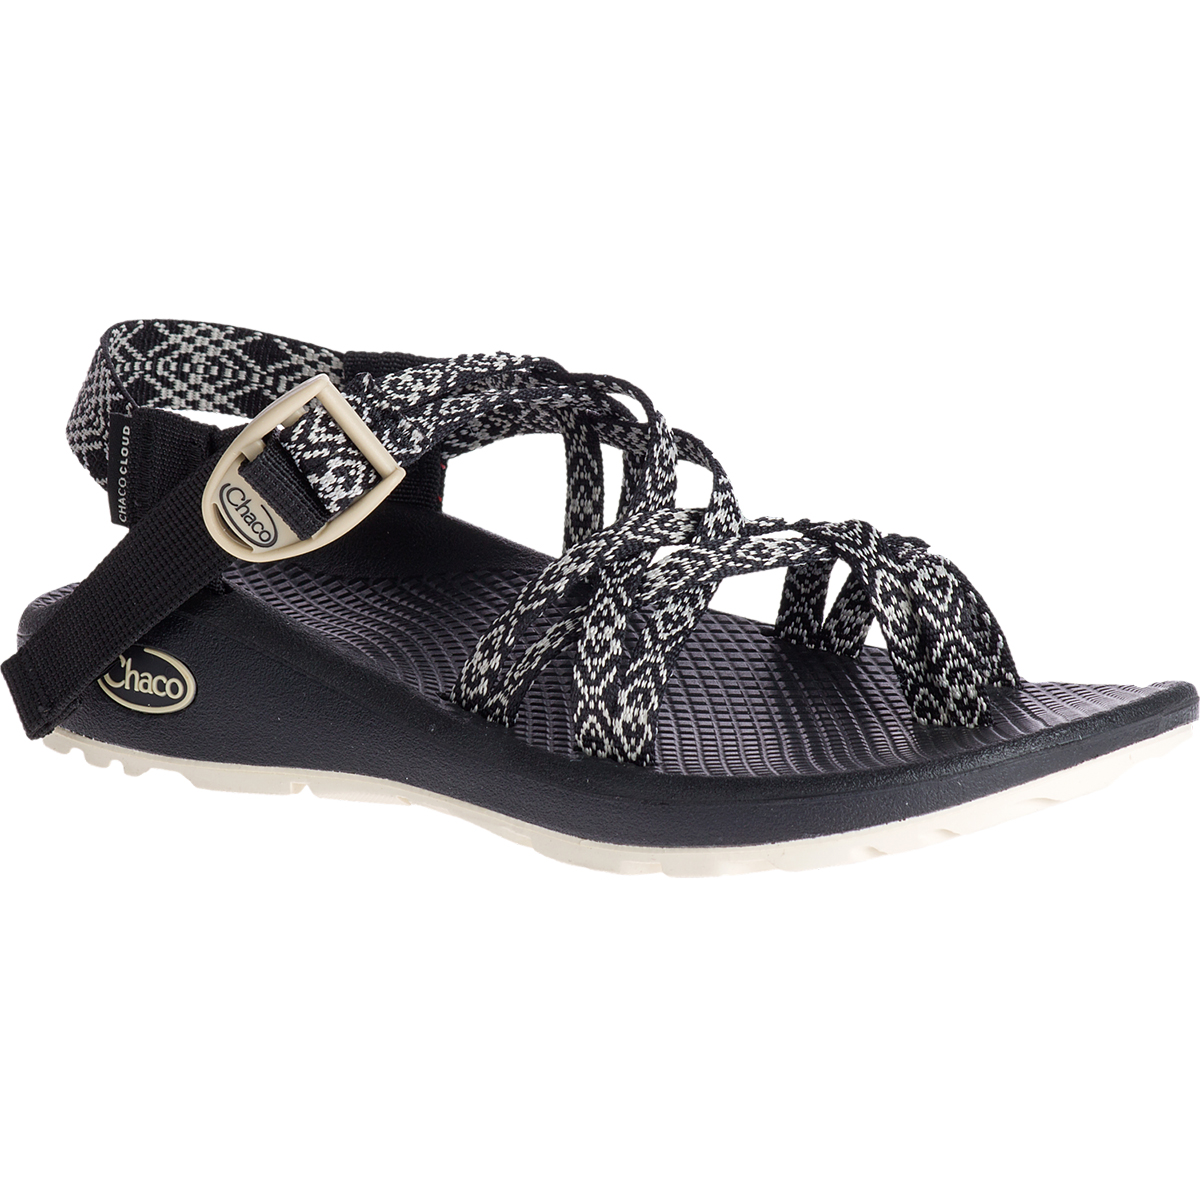 Chaco Women's Z/cloud X2 Sandals - Black, 10